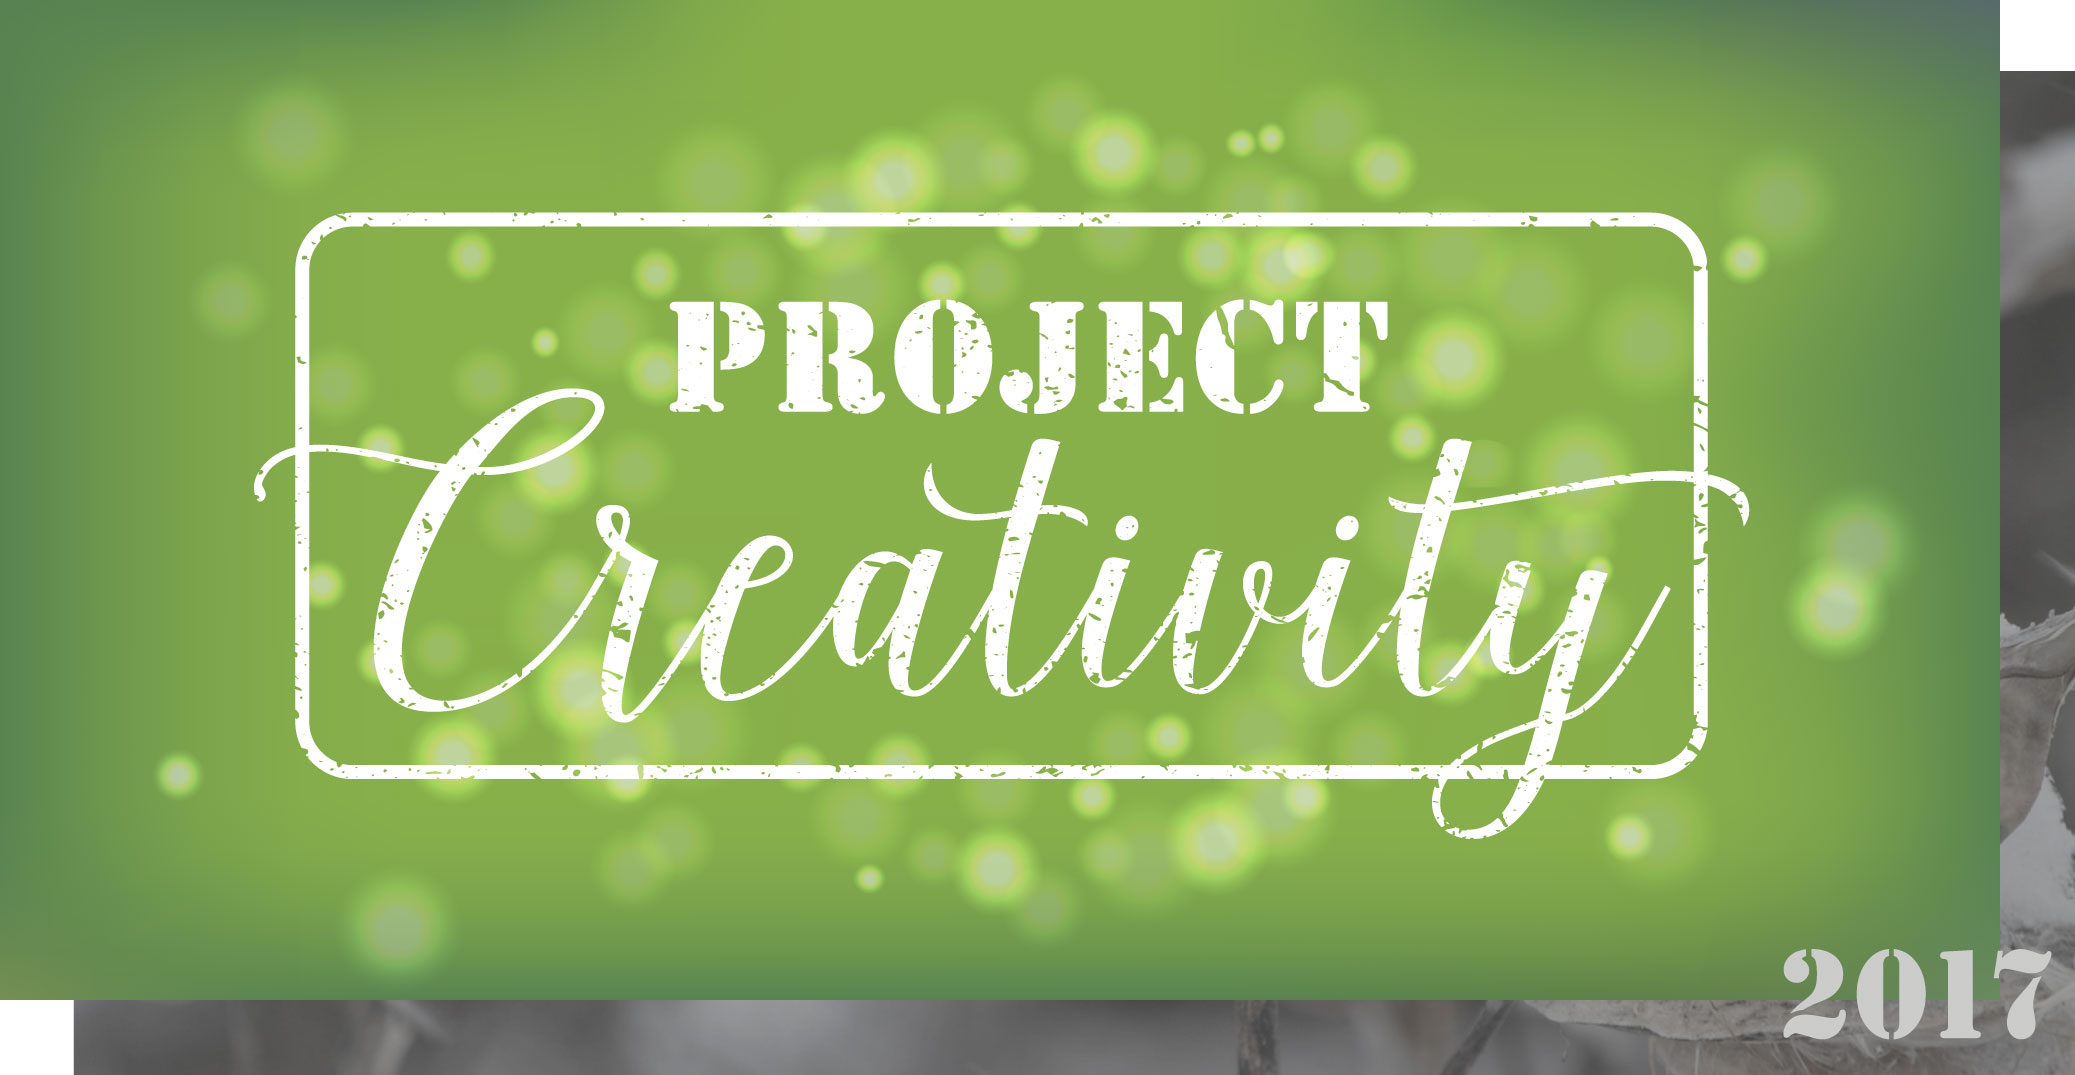 Project Creativity